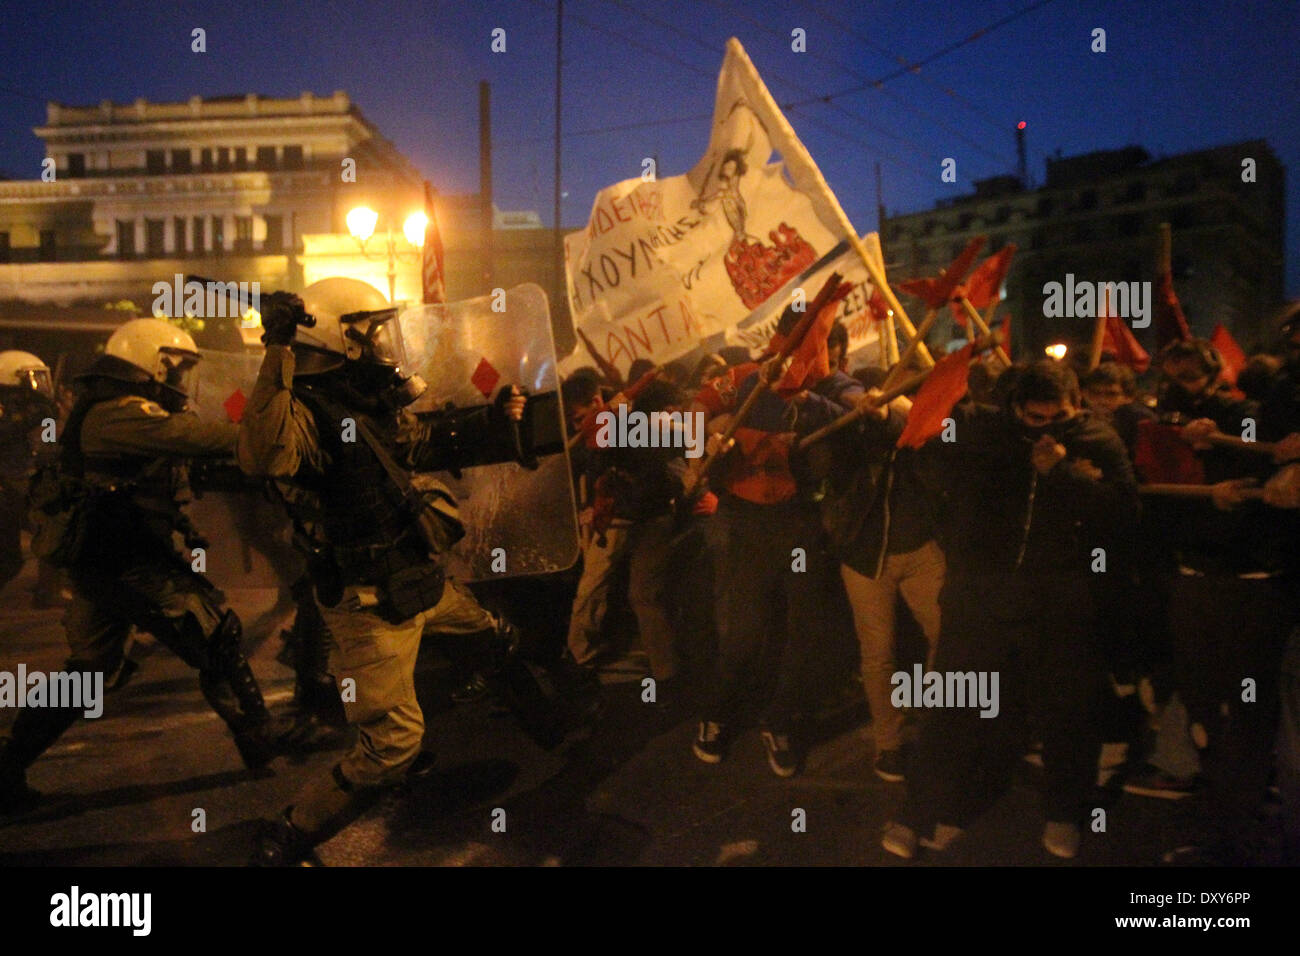 Athens, Greece. 1st Apr, 2014. Protesters clash with riot police blocking the way to the parliament in Athens, Greece, on April 1, 2014. Greek authorities set up exclusion zones in central Athens in which all protests are banned because of the ongoing Eurogroup meeting attended by all European Union finance ministers. Nevertheless, some 7,500 anti-austerity demonstrators held three separate protests outside the exclusion zones, and some tried to break through the riot police cordon blocking their way to the parliament. Credit:  Marios Lolos/Xinhua/Alamy Live News - Stock Image